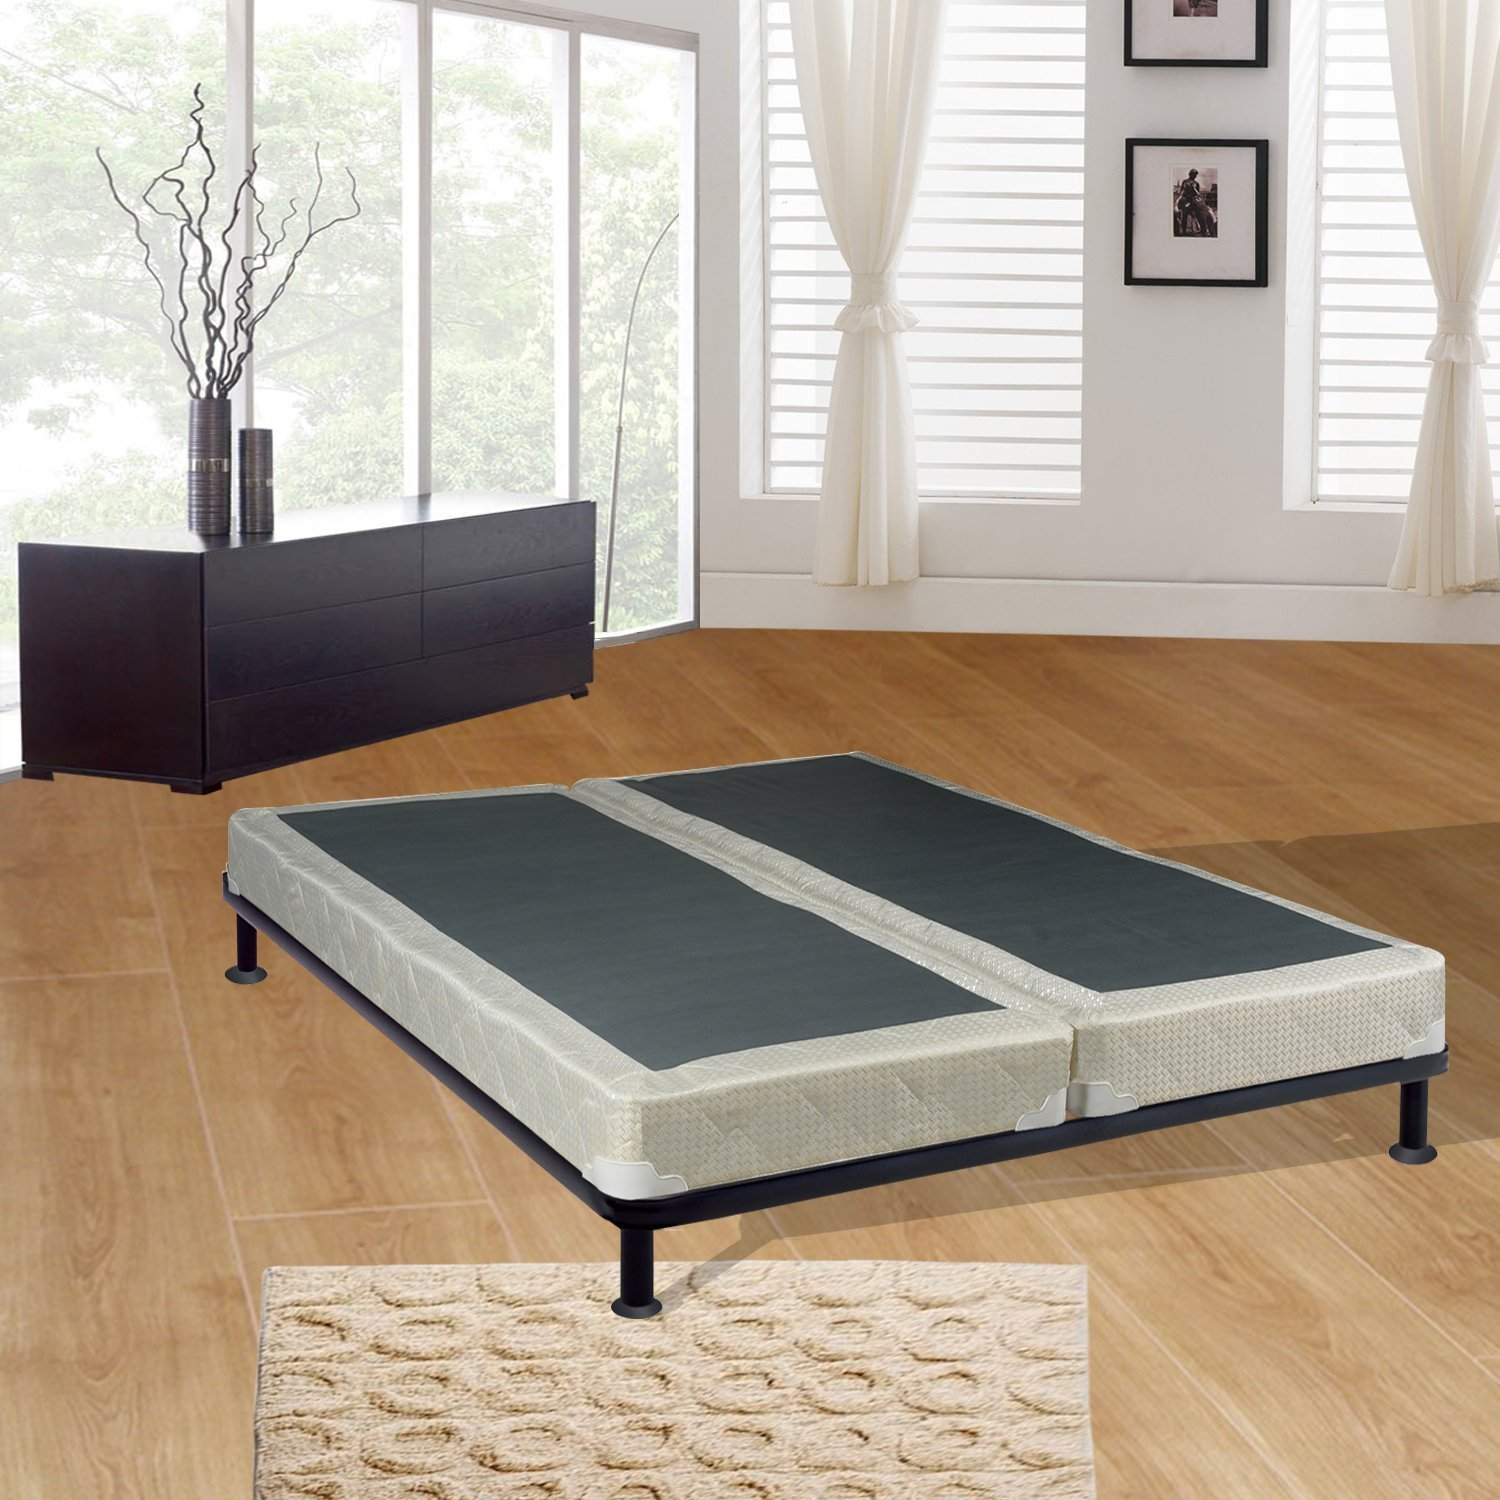 Amazon Com Spring Sleep 4 Queen Size Split Foundation Box Spring For Mattress Splendor Collection Kitchen Dining